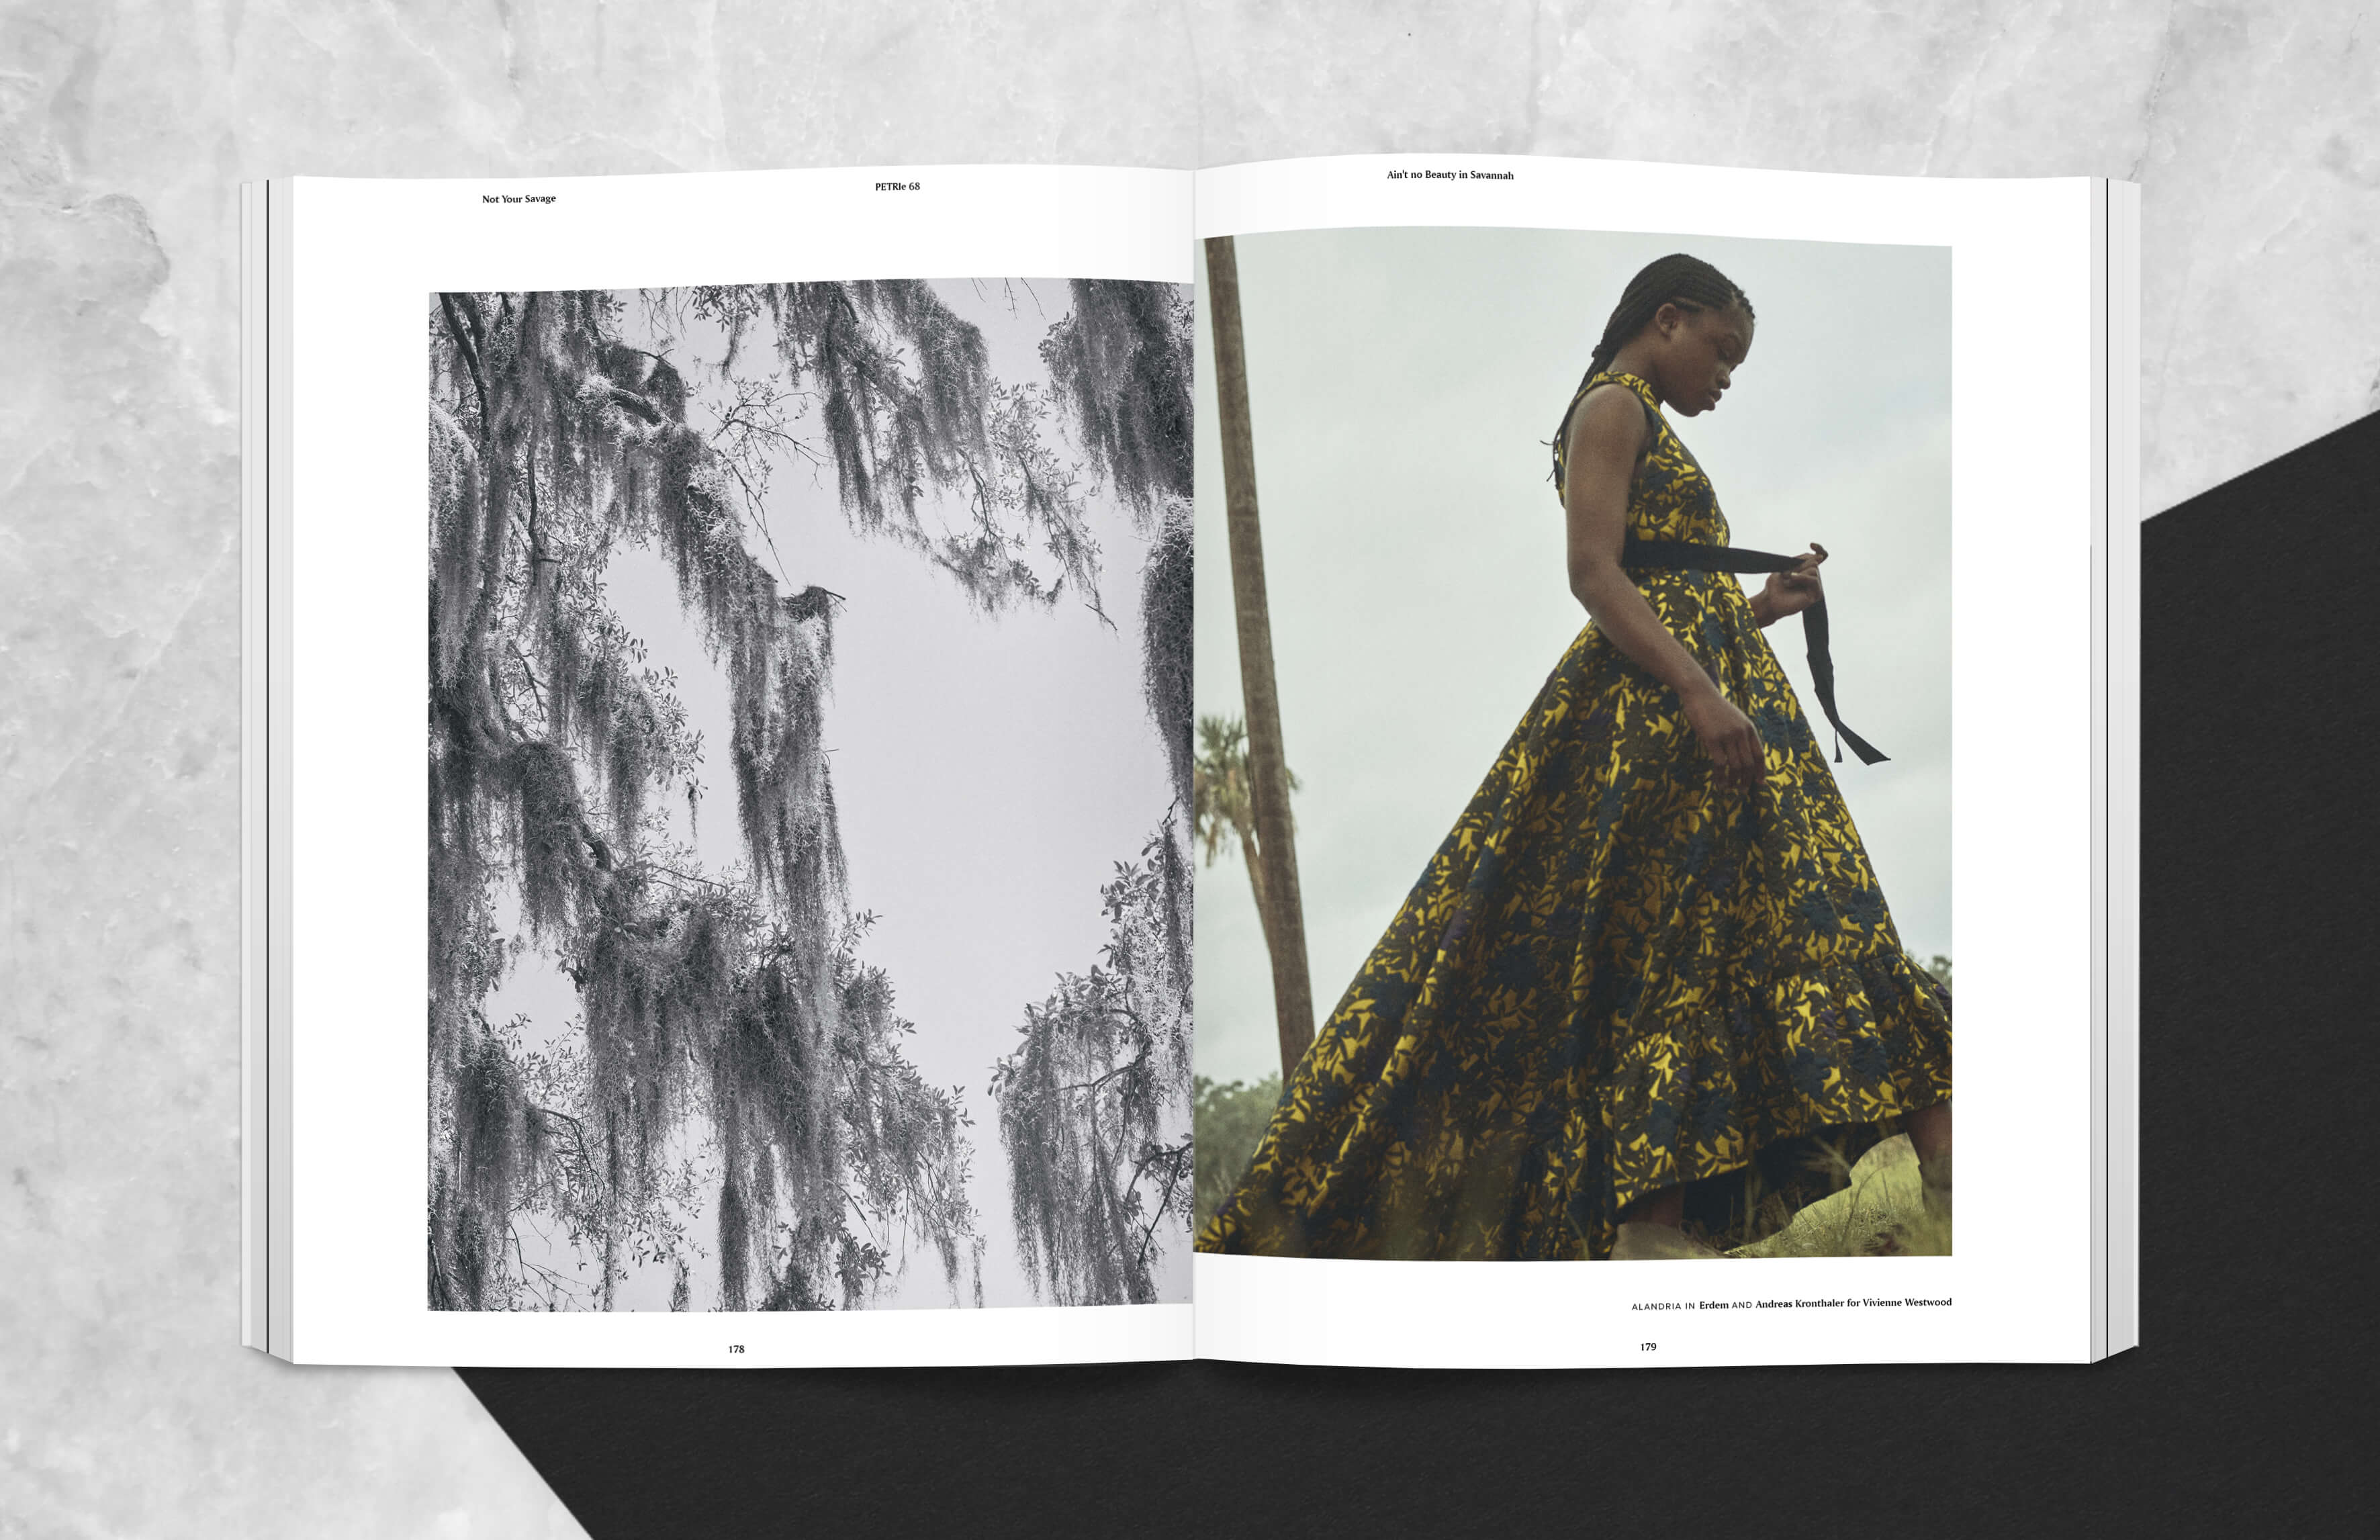 Magazine spread showing spanish moss tree in savannah and girl walking outside